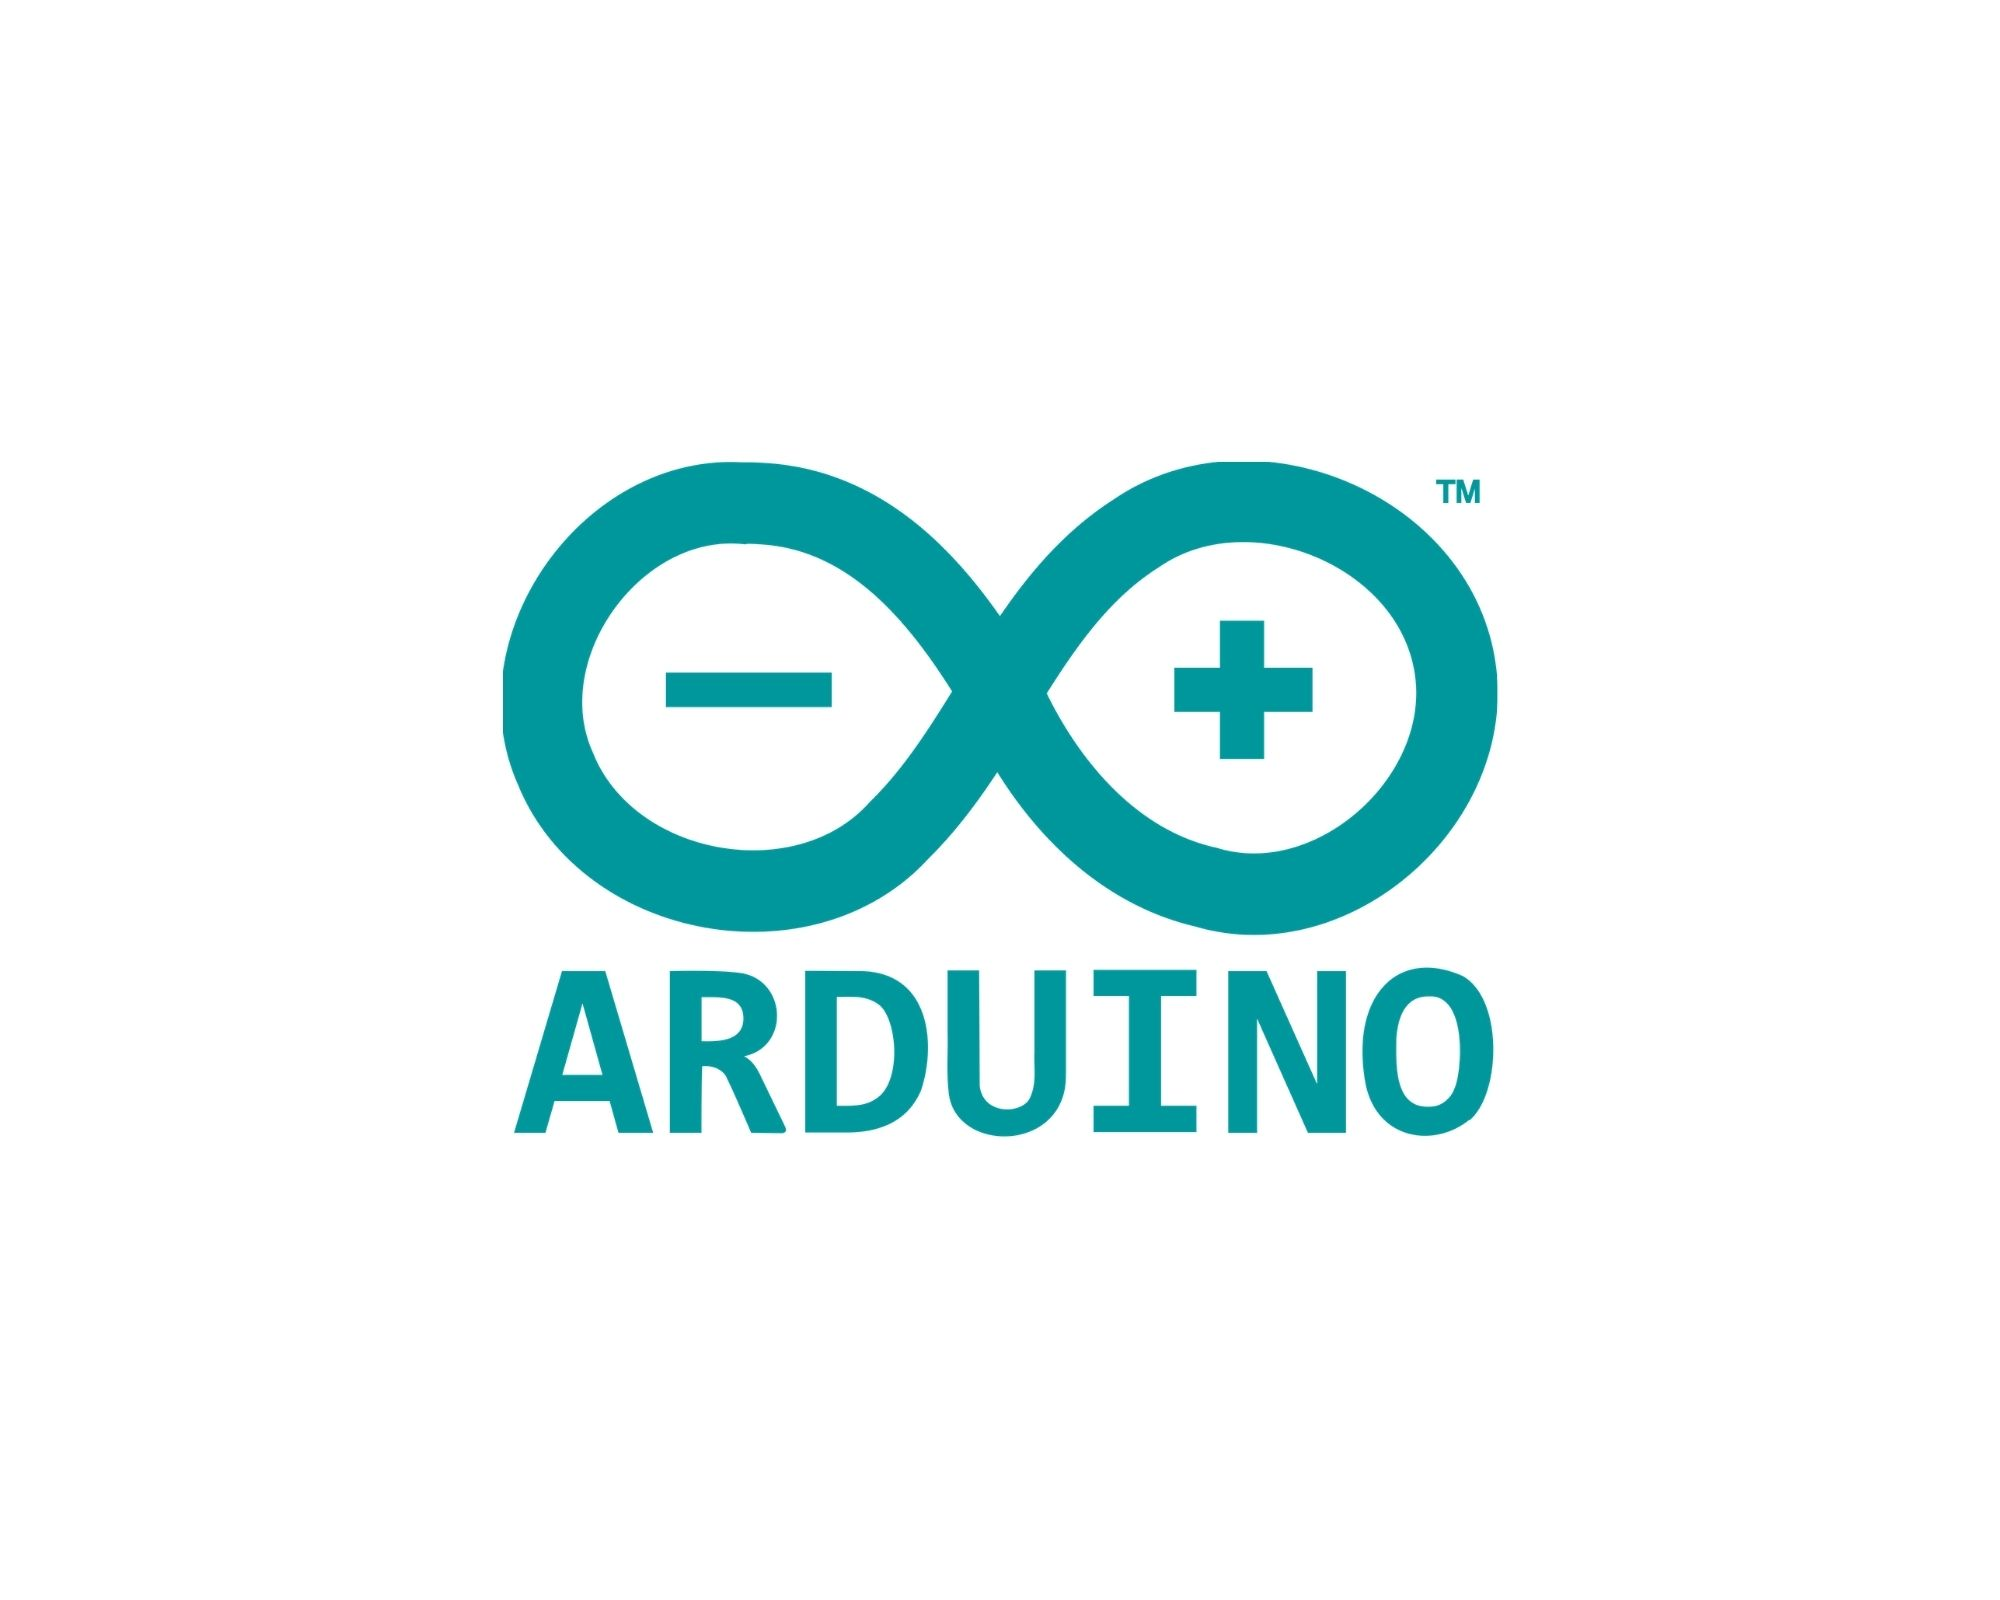 Arduino- Engaging with the hobbyist community